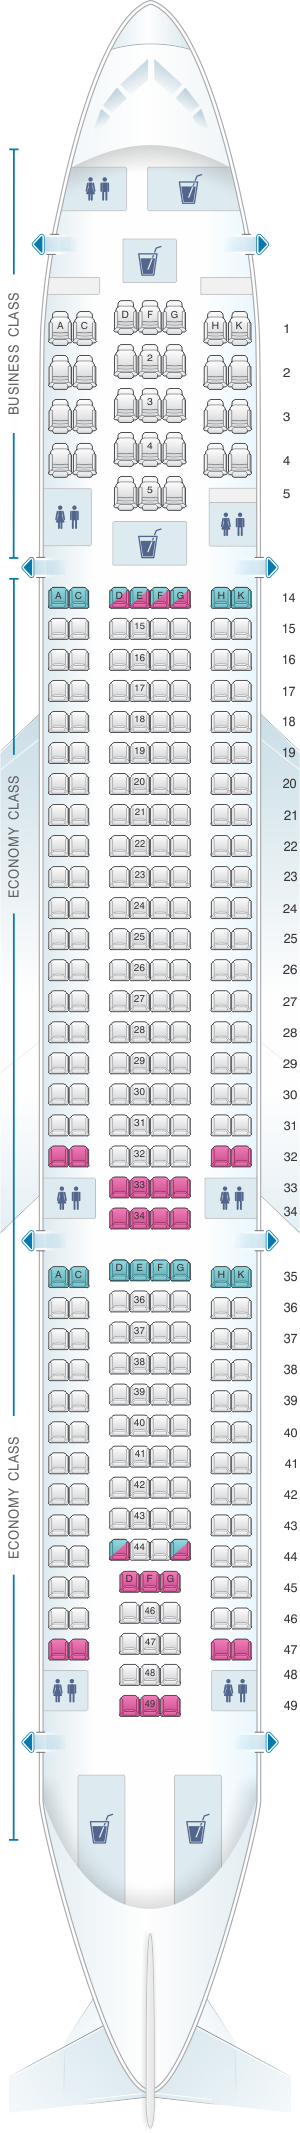 Seat Map Hi Fly Airbus A330 200 298pax Hawaiian airlines